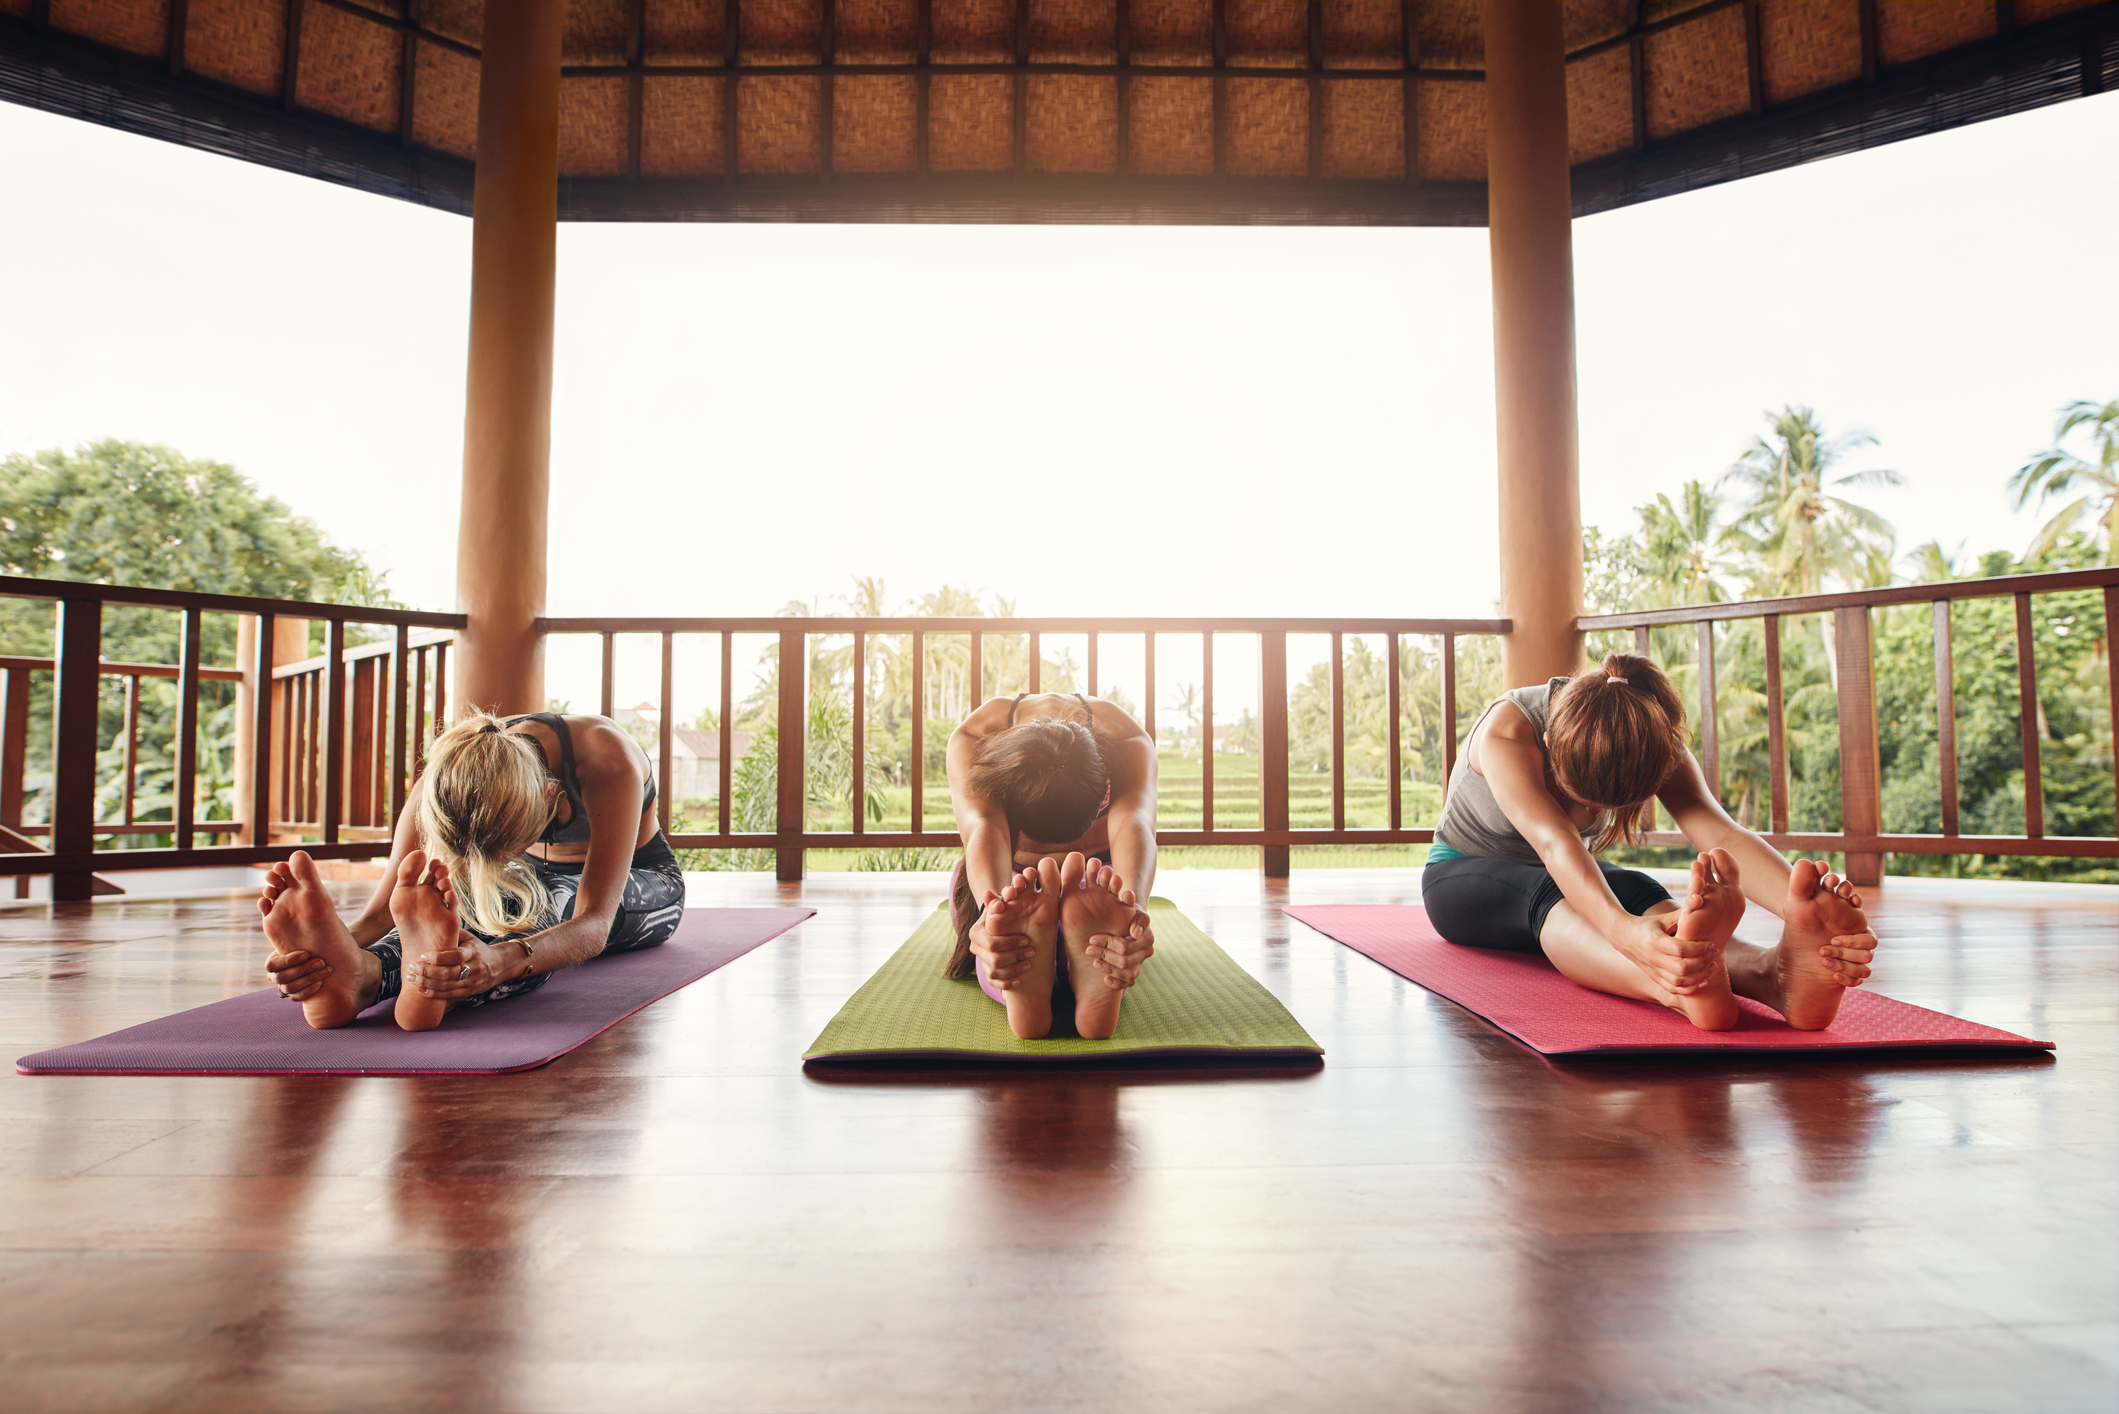 Alternative Learning - When you're working hard day-in, day-out, it's easy to get disconnected from your body and have a jumbled mind. You often don't realize how badly you've lost yourself until you find your center again - our program helps bring you back with optional activities like group yoga and meditation, Zumba, and nature trips.